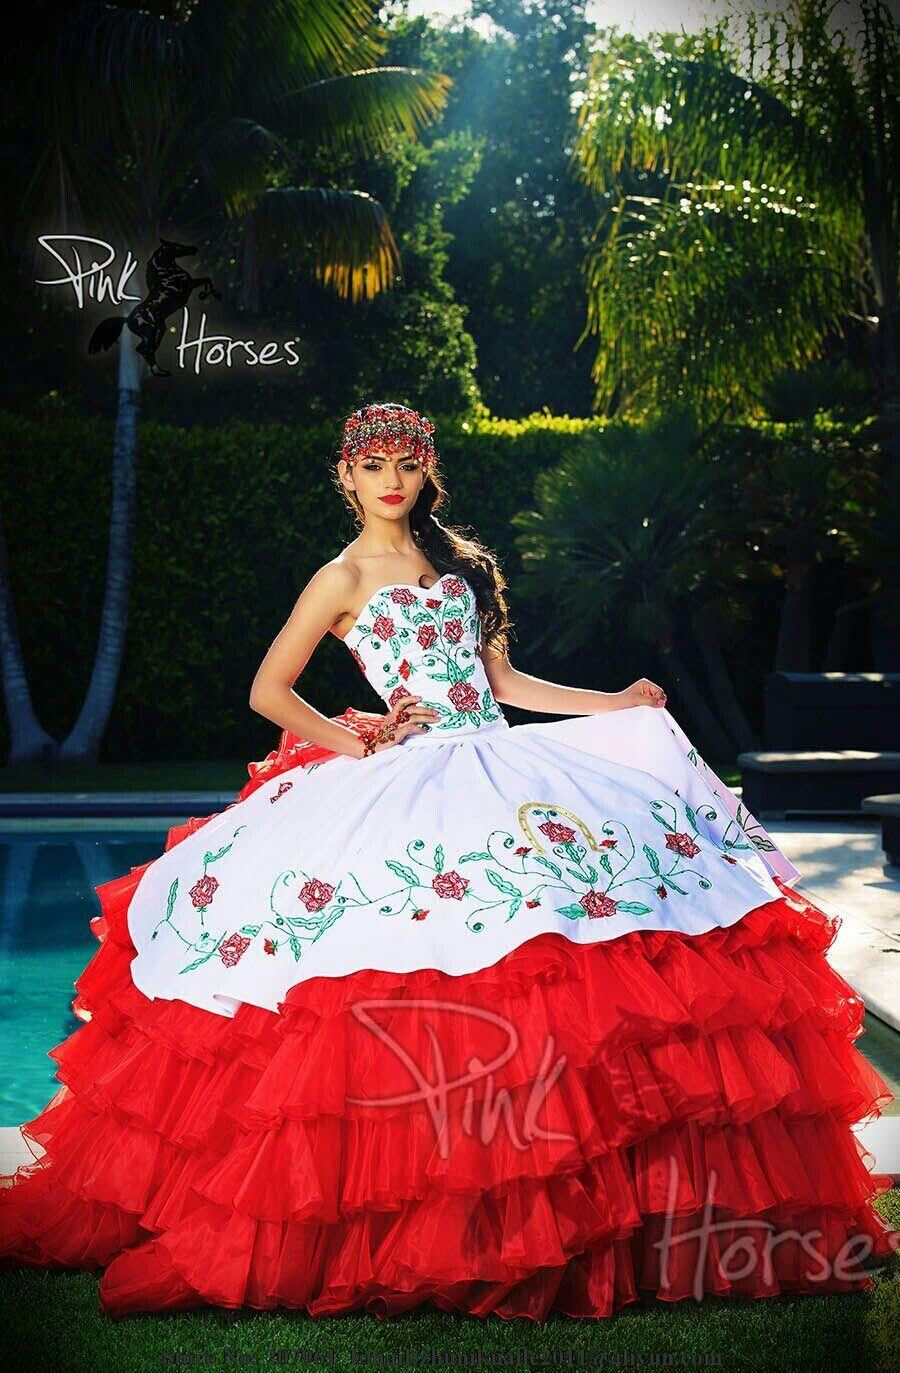 265a2f57b55 Red Roses Mariachi Type  600- 1000